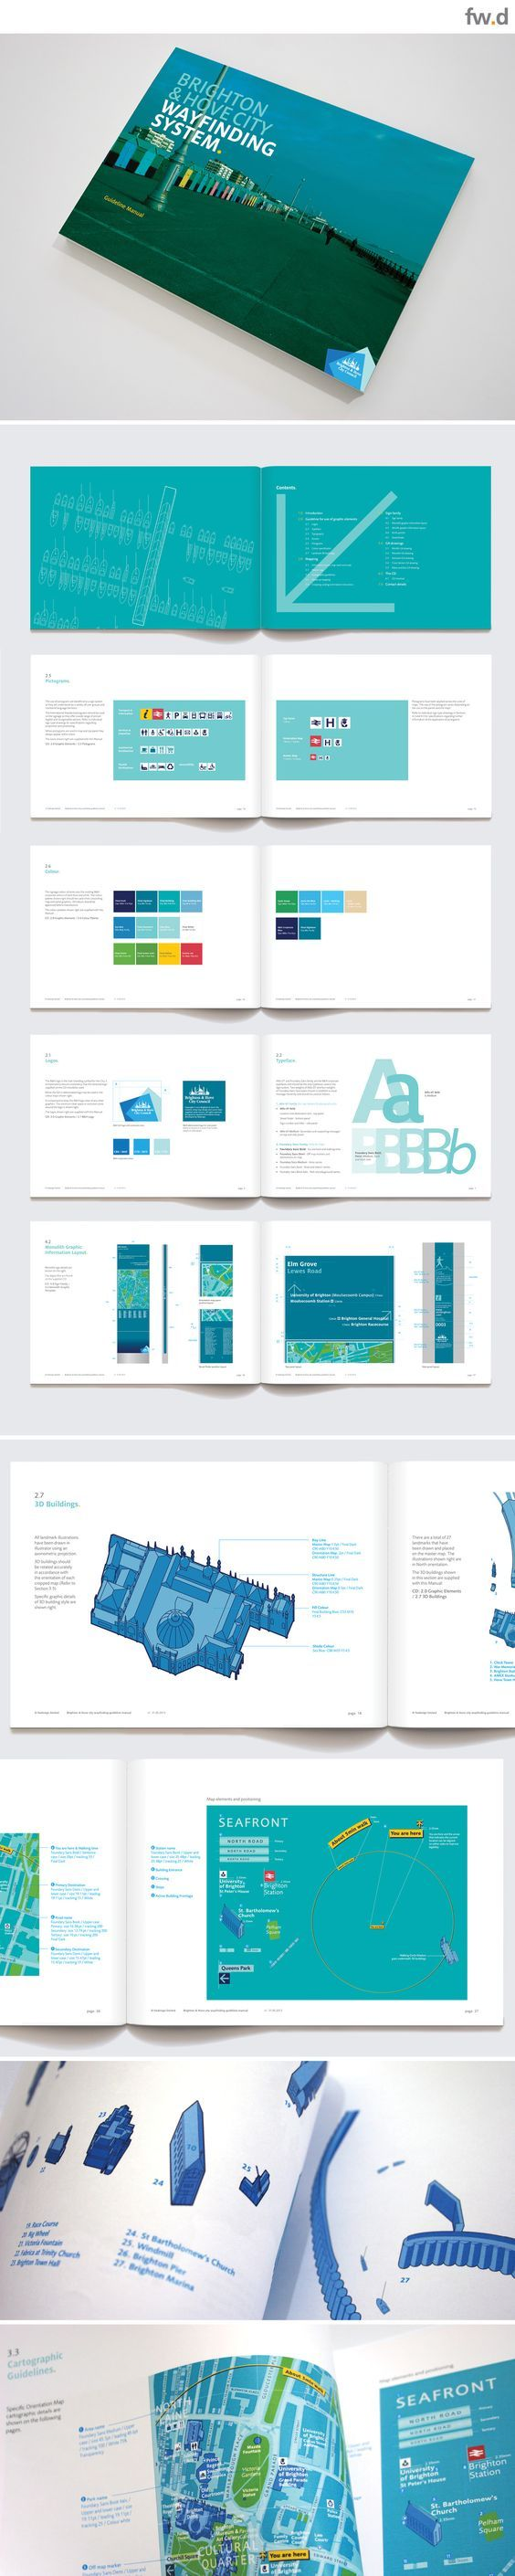 Brighton pedestrian wayfinding & signage design Guidelines by fwdesign. www.fwdesign.com #guidelines #graphics #layout: